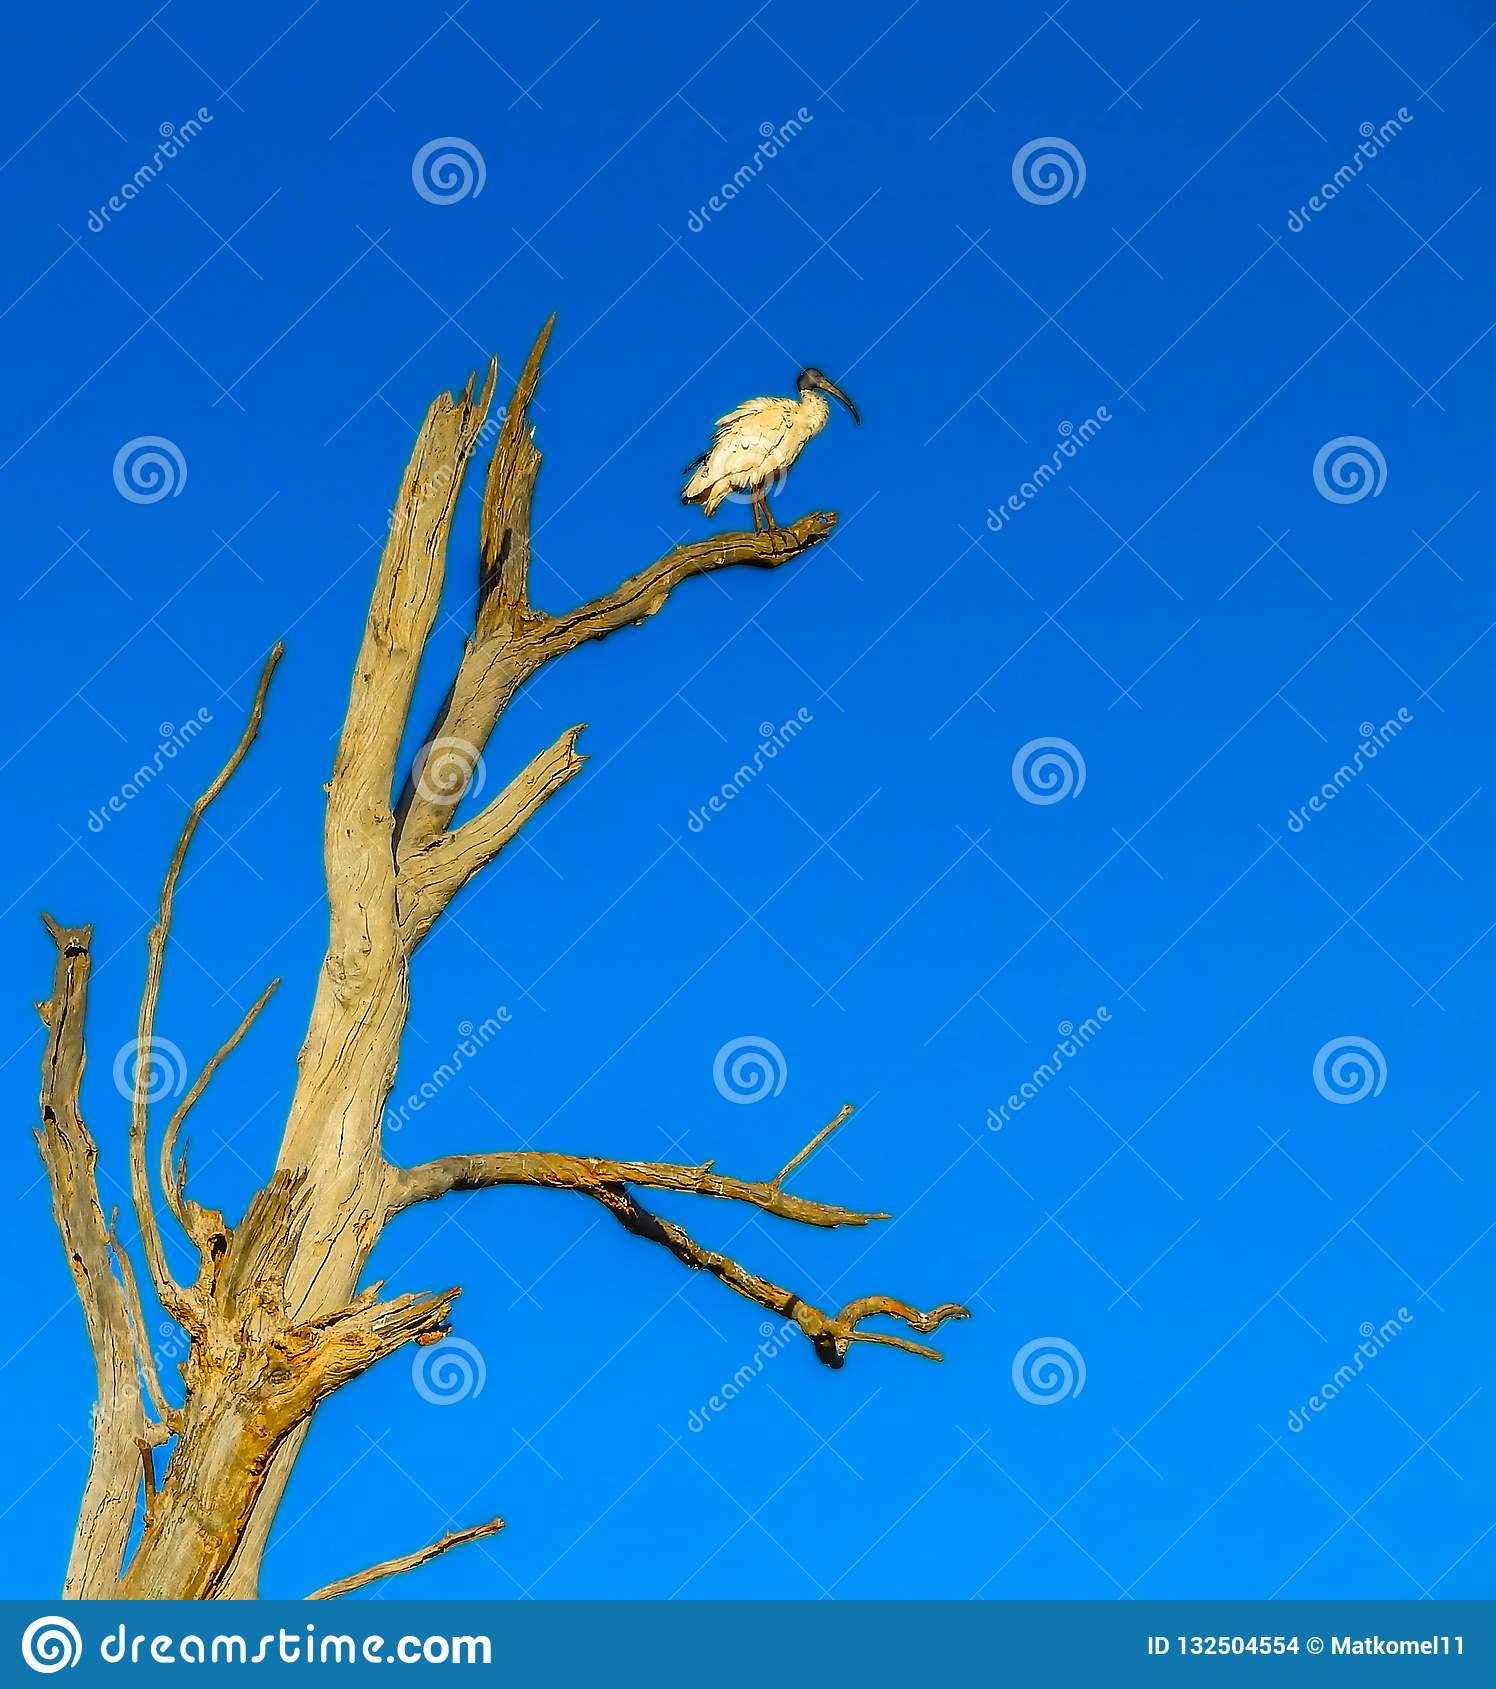 Lonely White Ibis bird in the tree